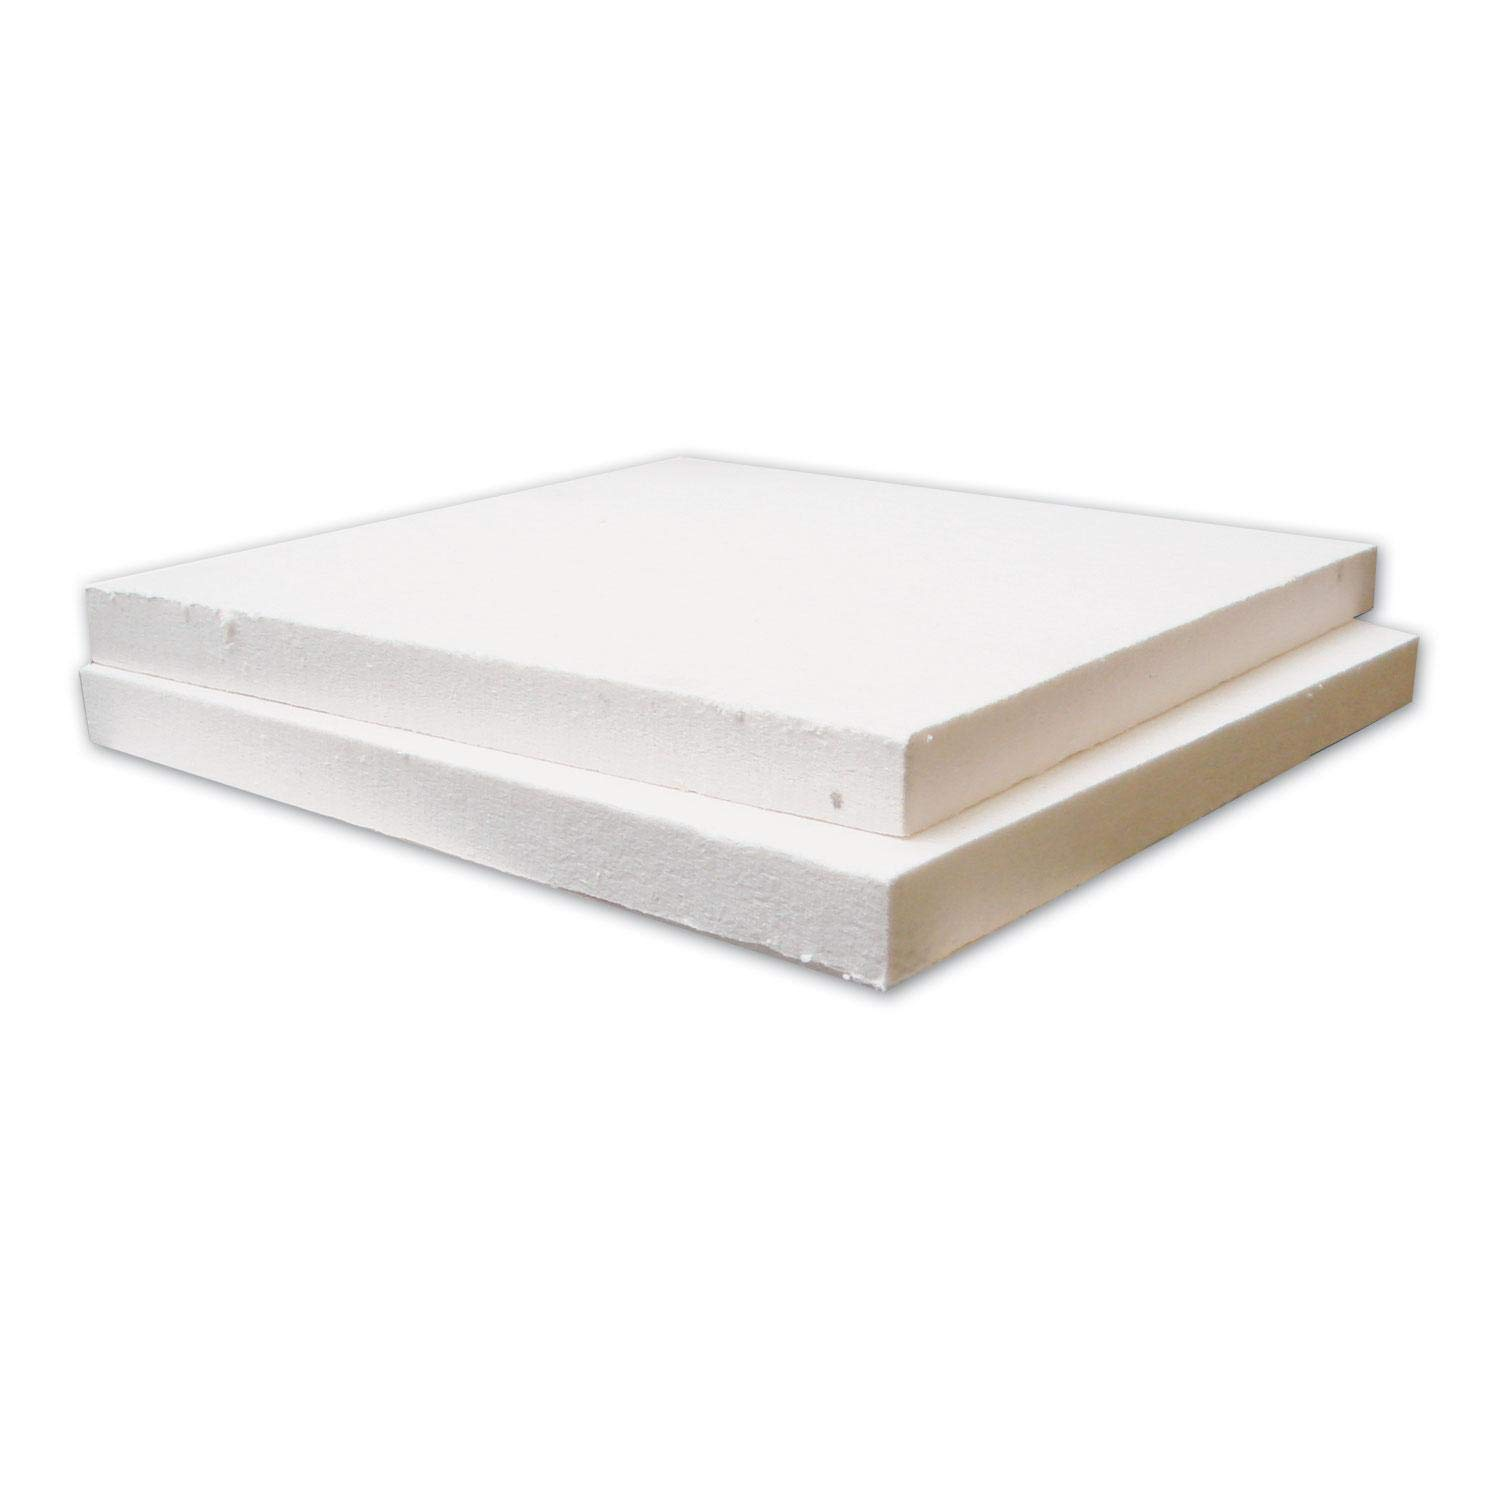 12'' Square Vermiculite Board - 2 Pack by Delphi